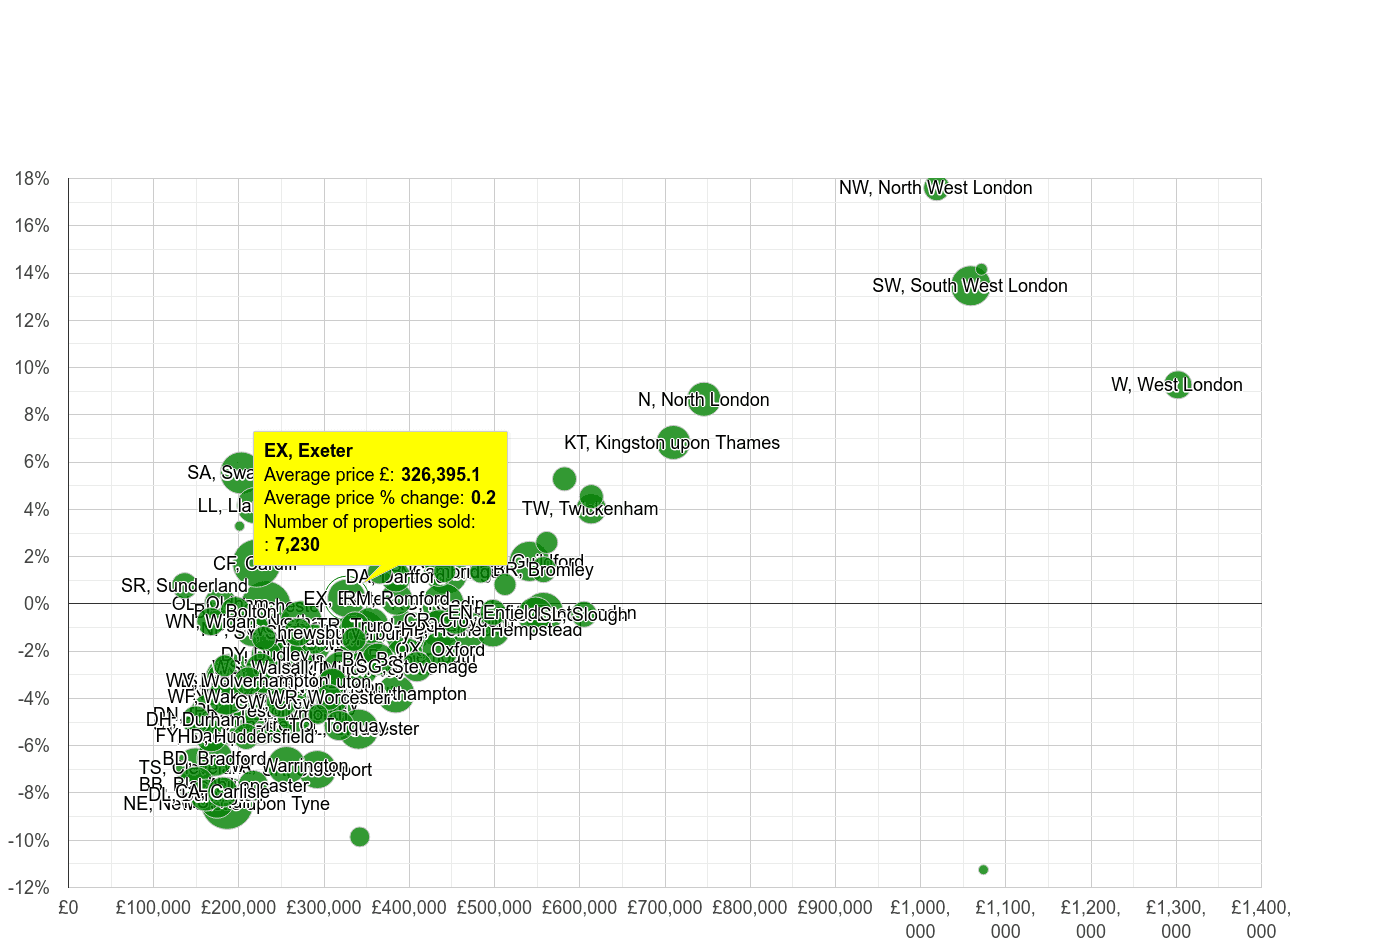 Exeter house prices compared to other areas